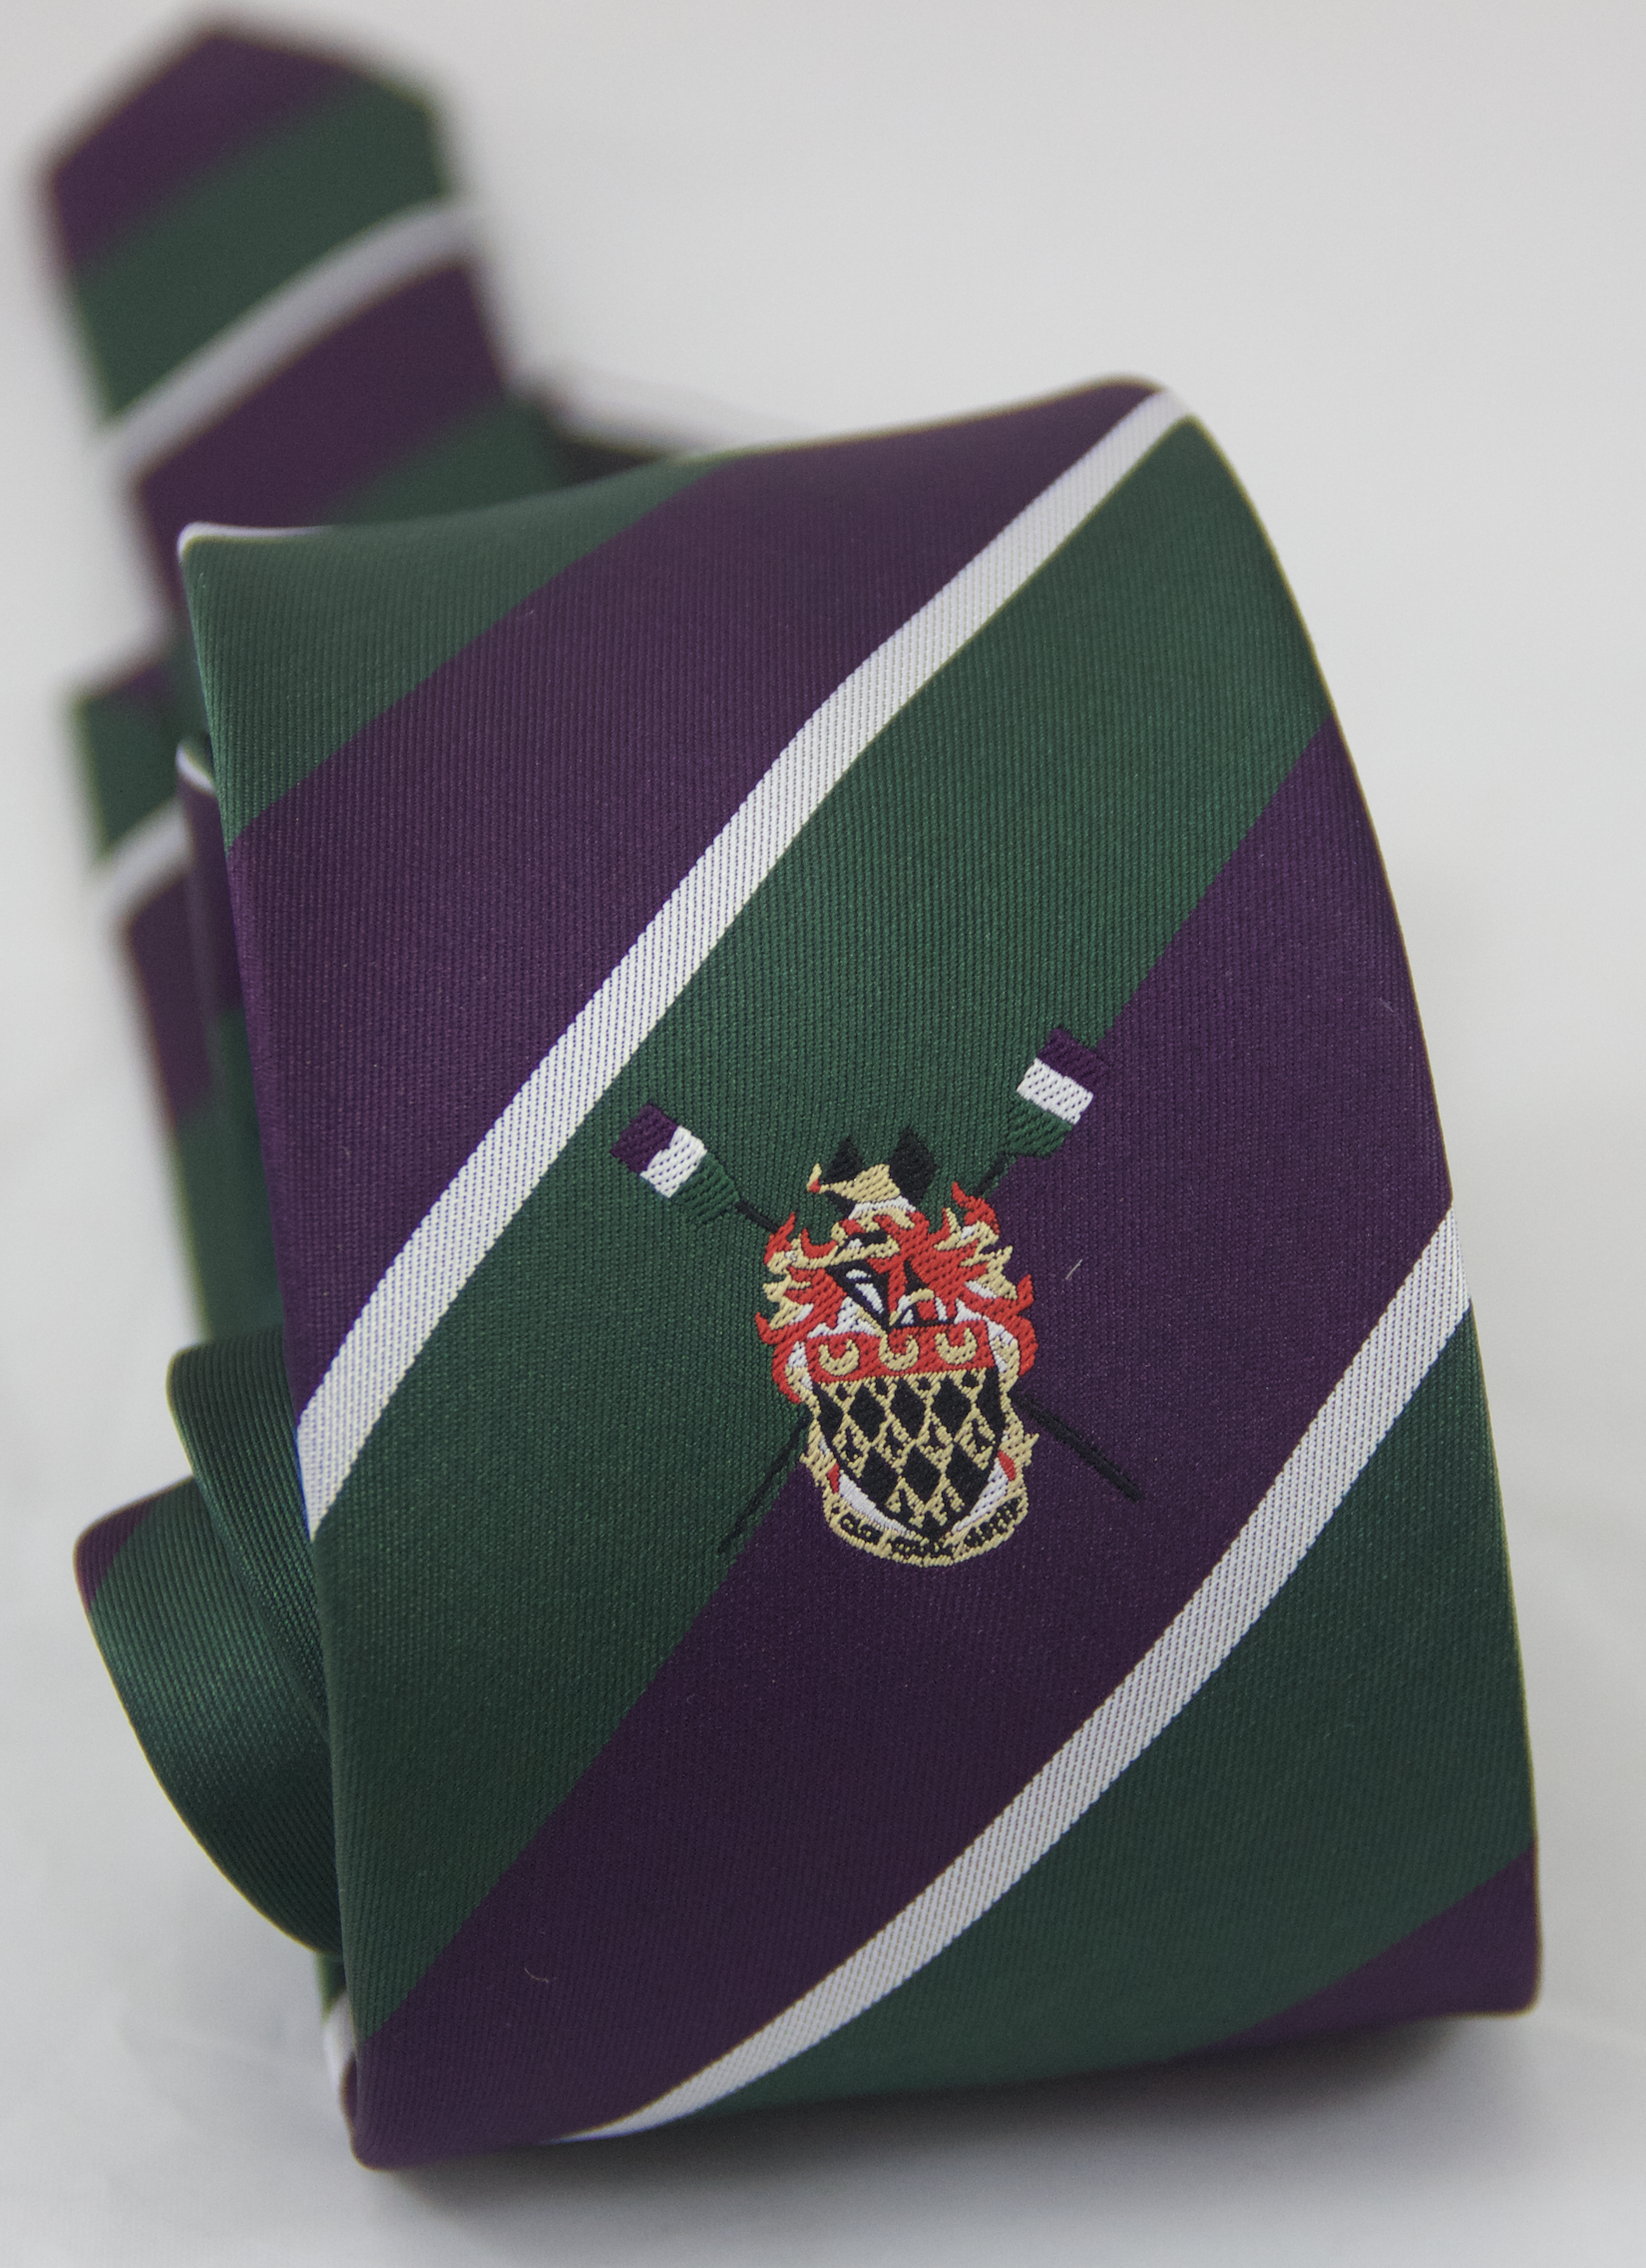 Rowing Club Tie